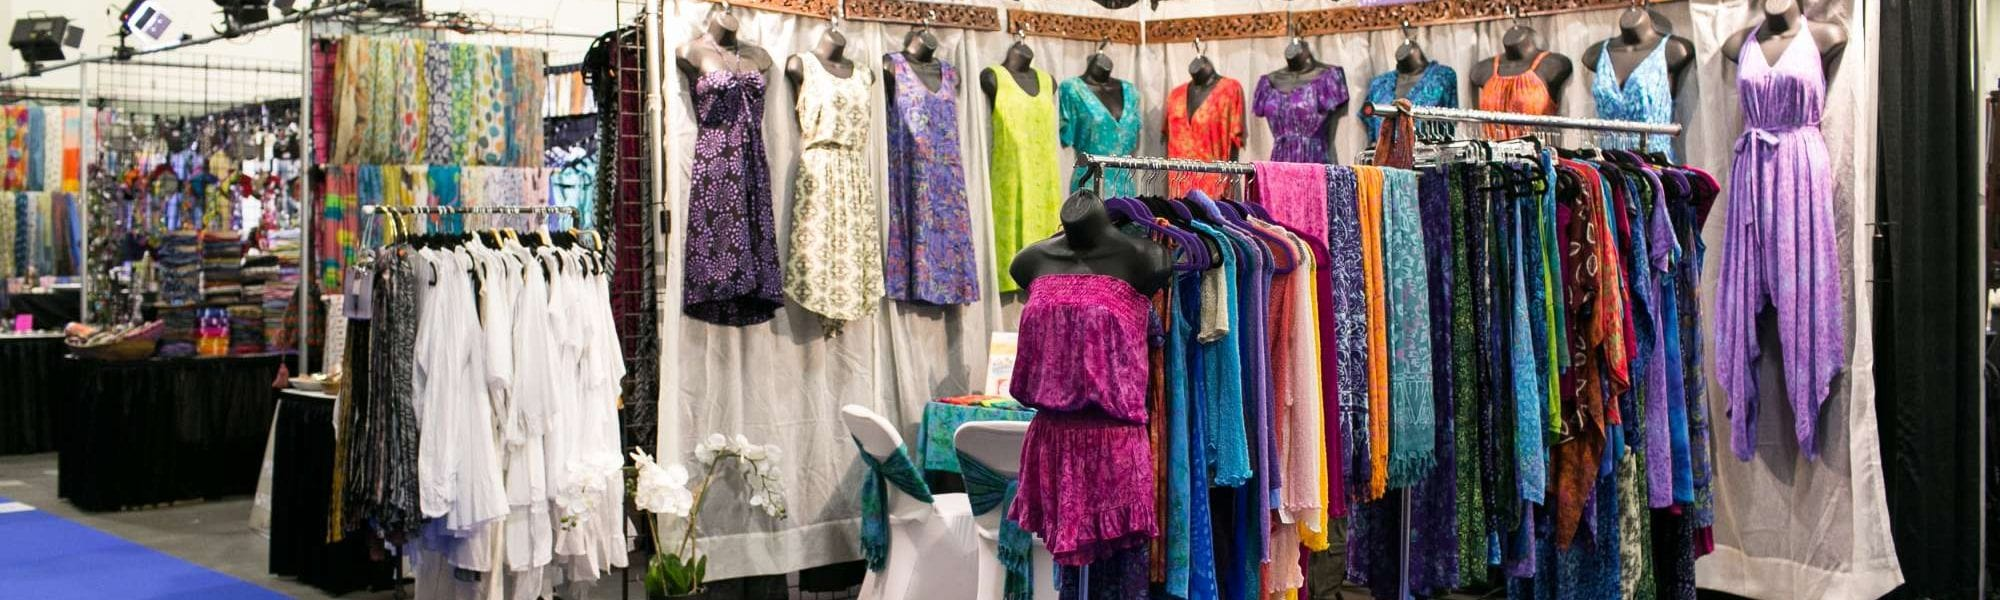 vendor booth full of brightly colored dresses